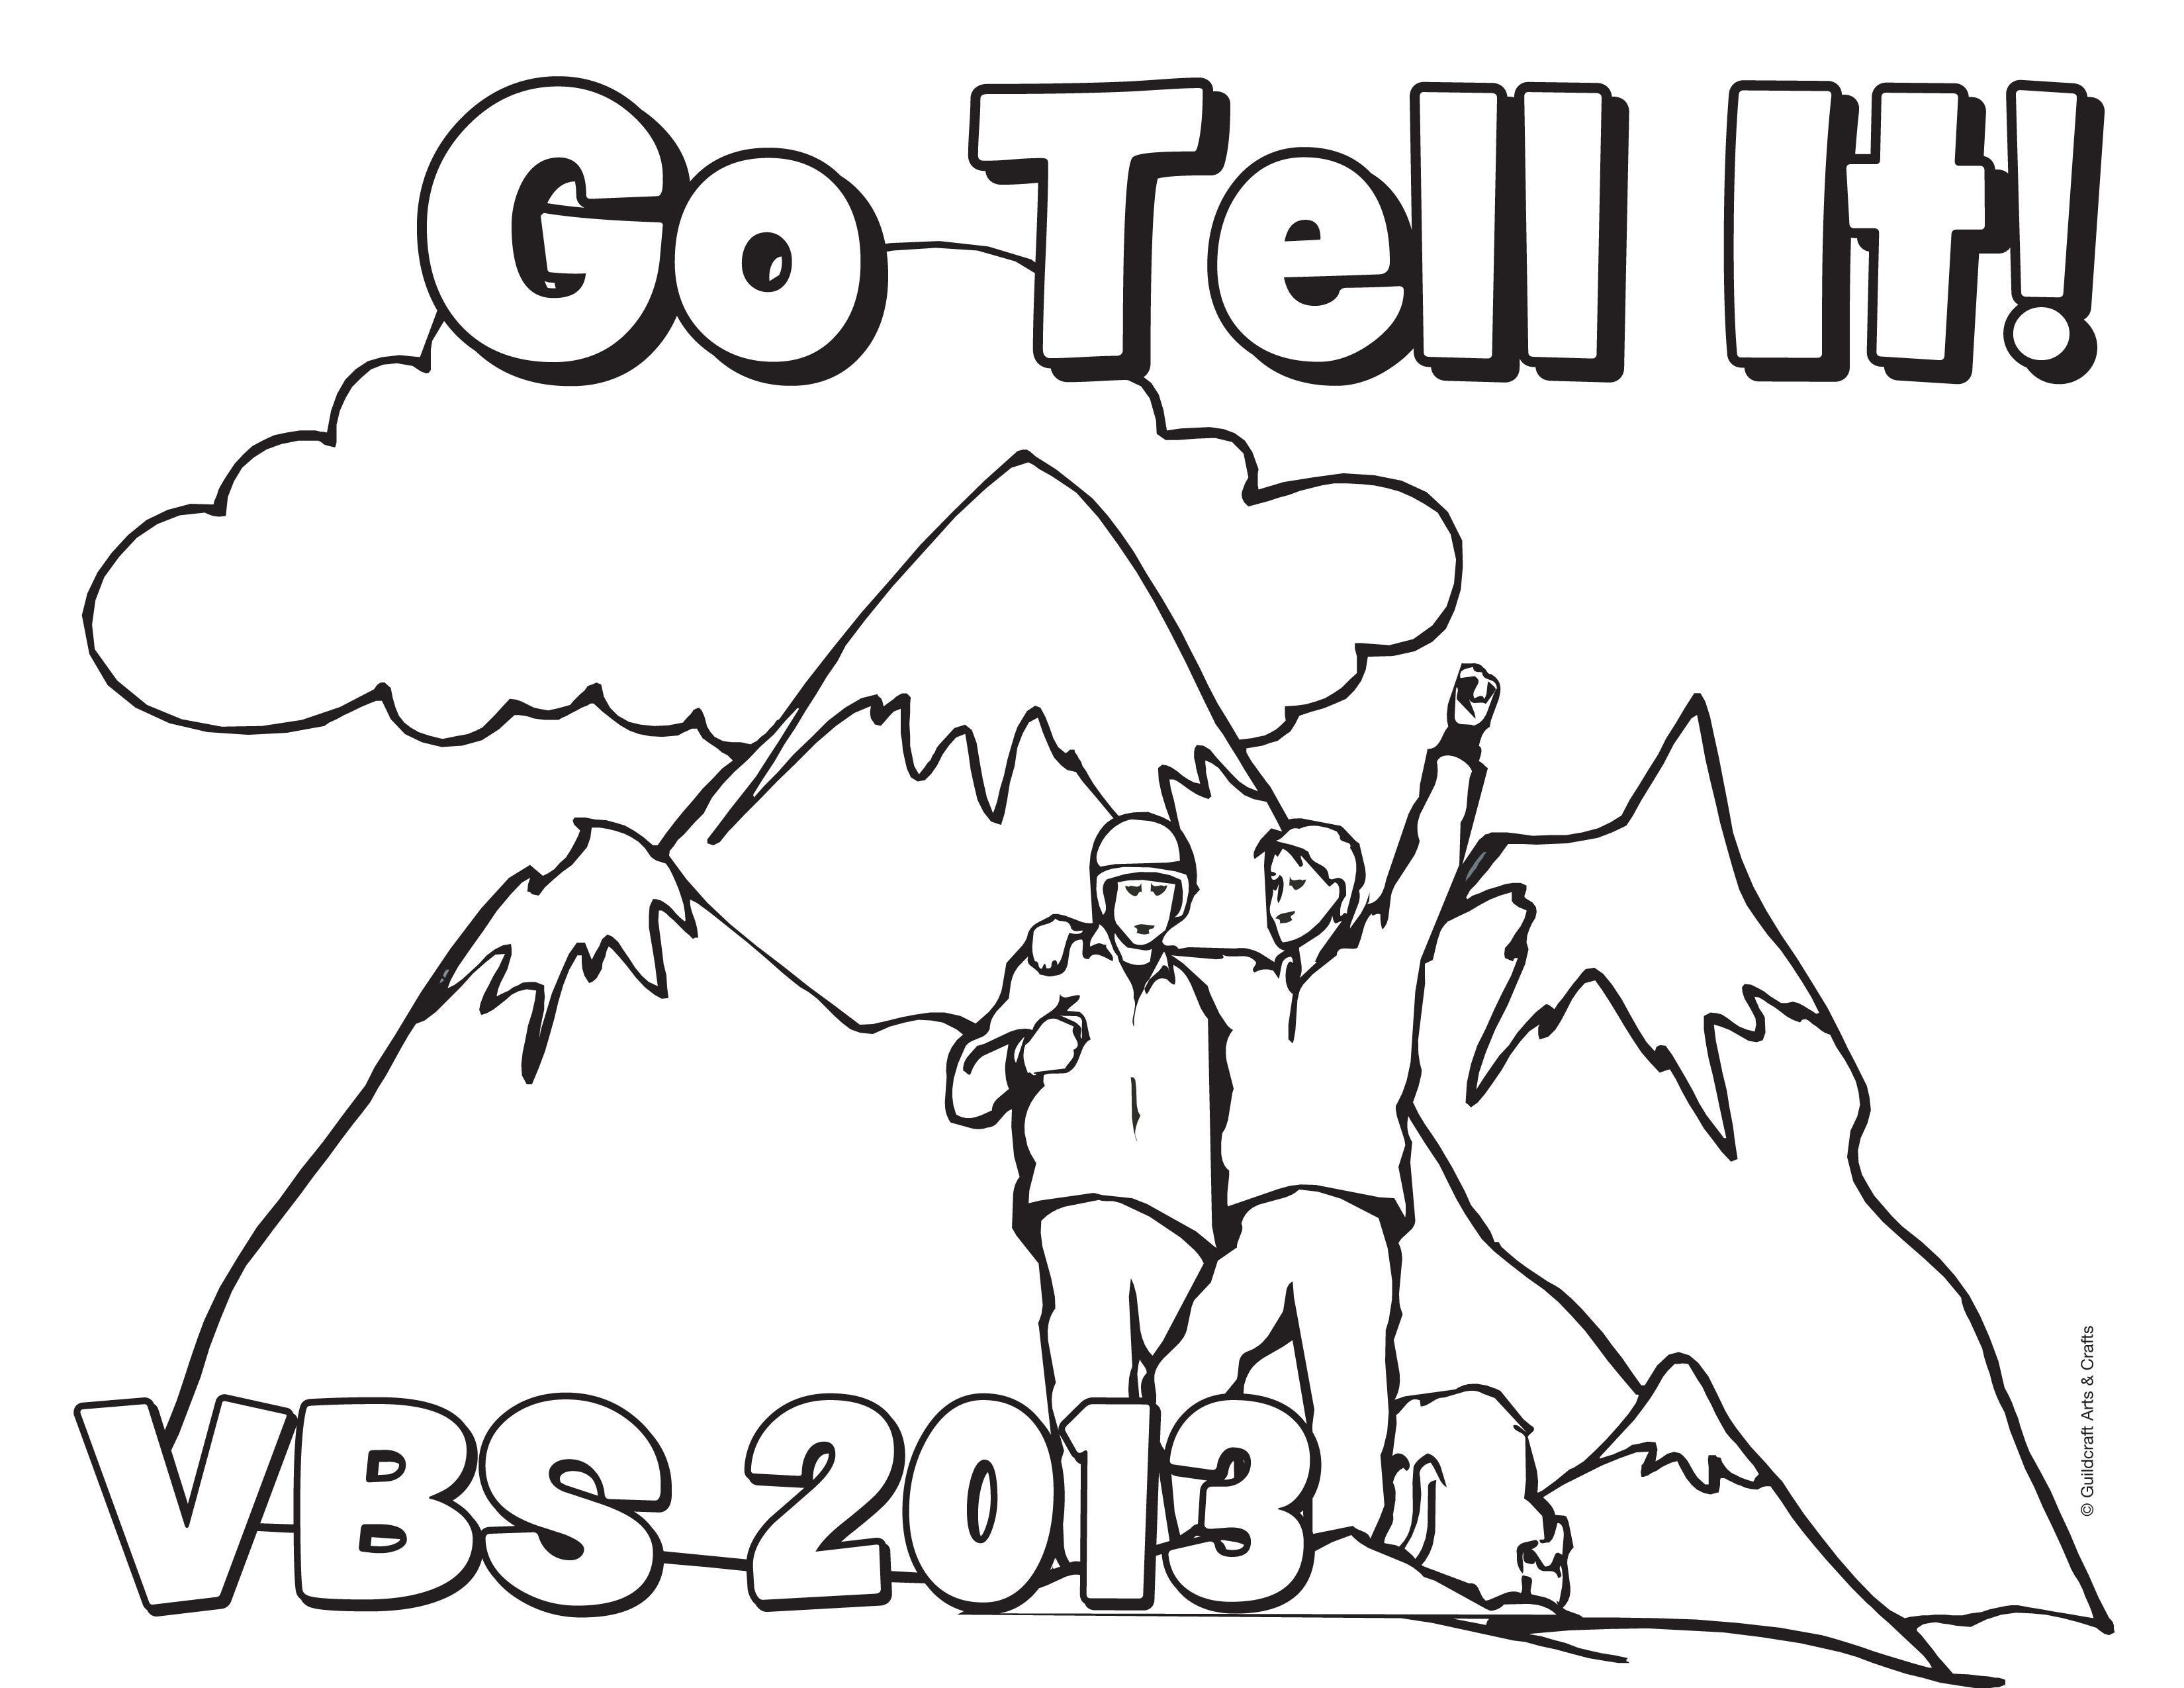 Free Go Tell It VBS 2013 coloring sheet from Guildcraft